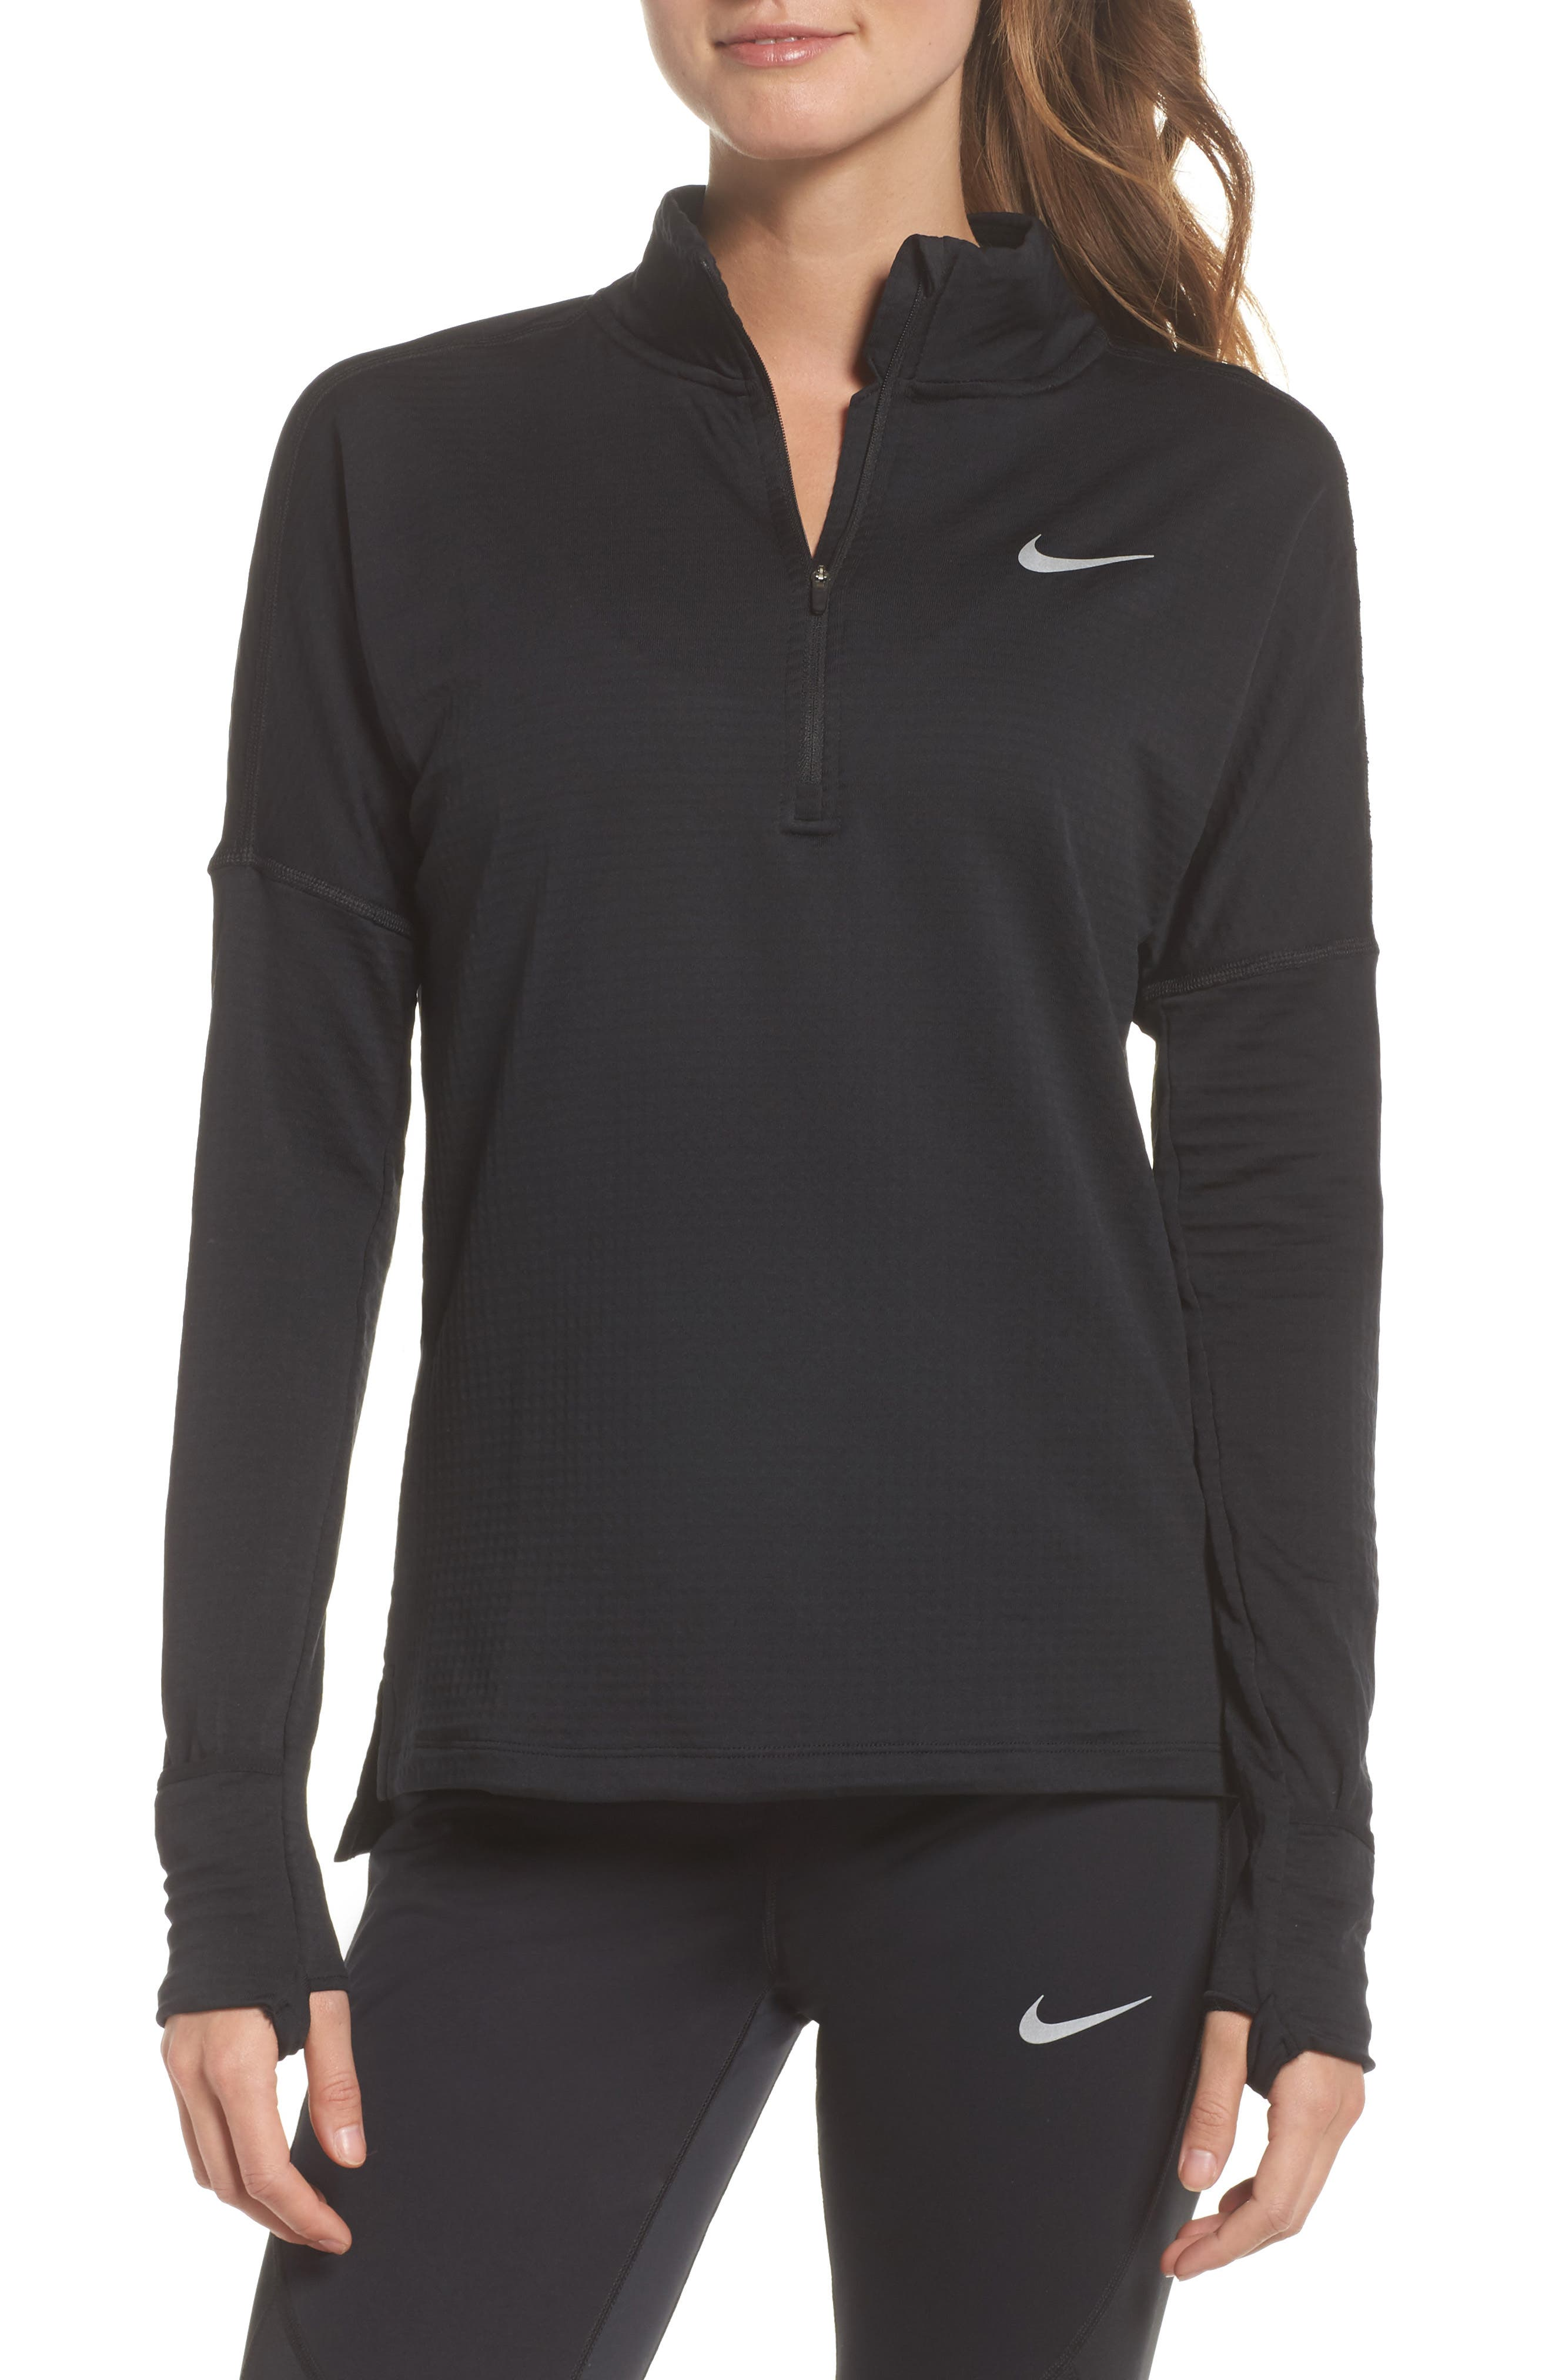 Alternate Image 1 Selected - Nike Therma Sphere Element Running Pullover Top